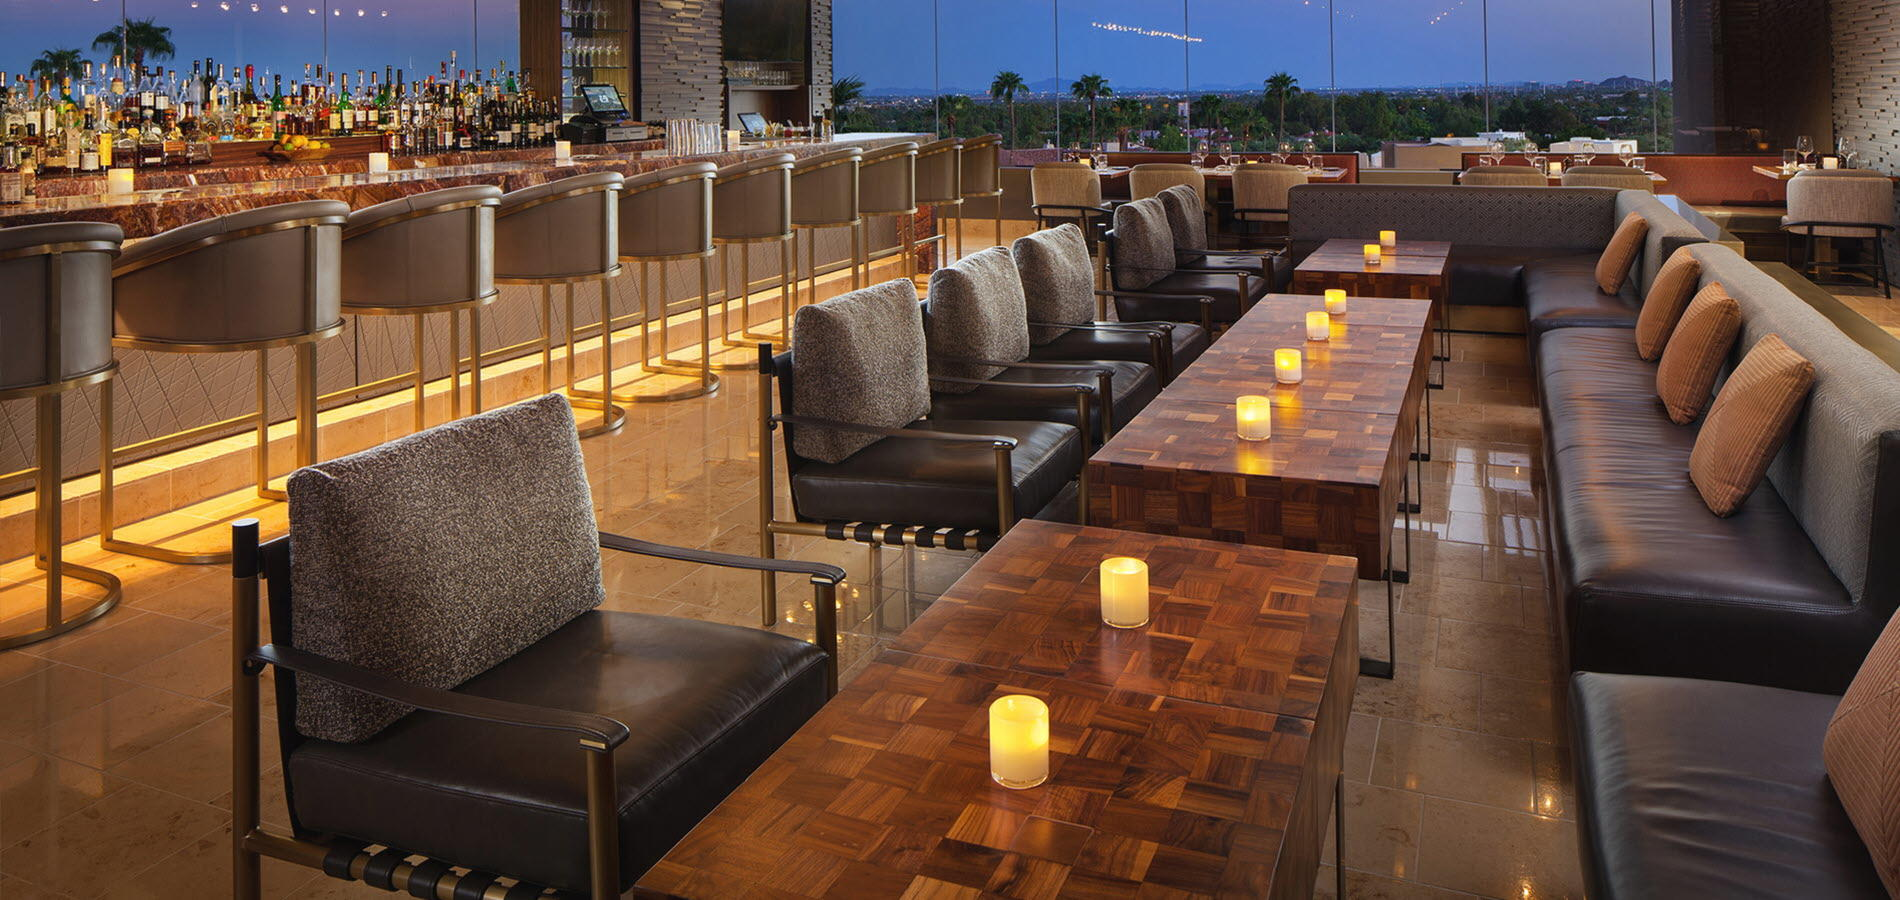 custom restaurant furniture commercial stylish made dining furniture-1